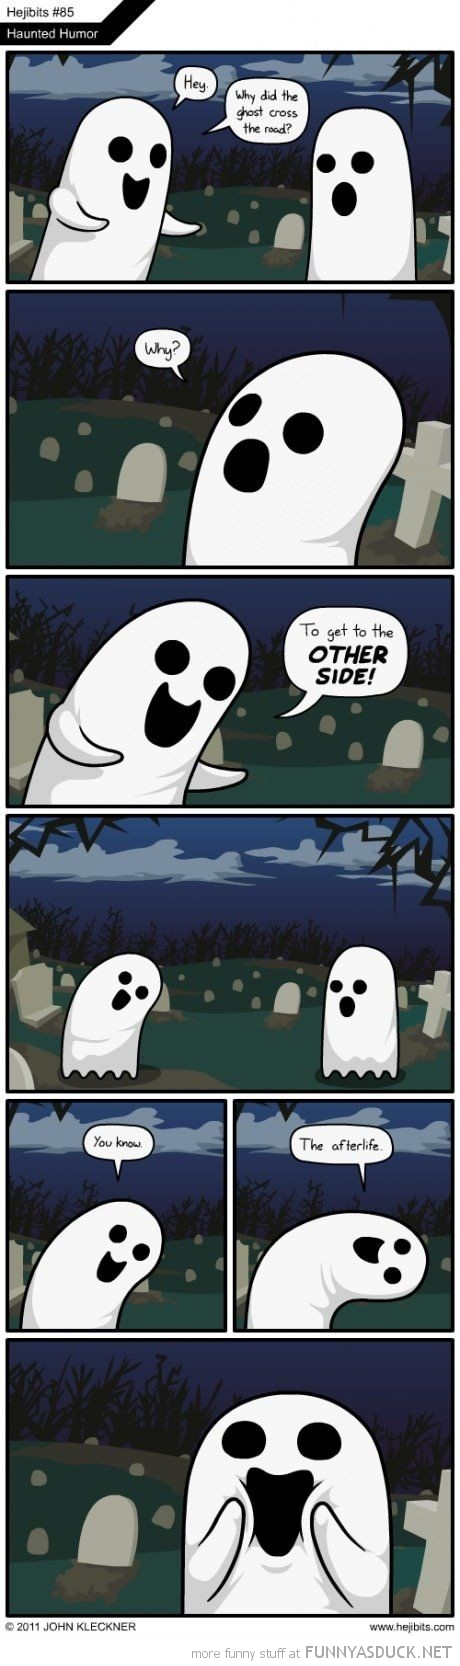 haunted humor comic ghost joke other side after life funny pics pictures pic picture image photo images photos lol